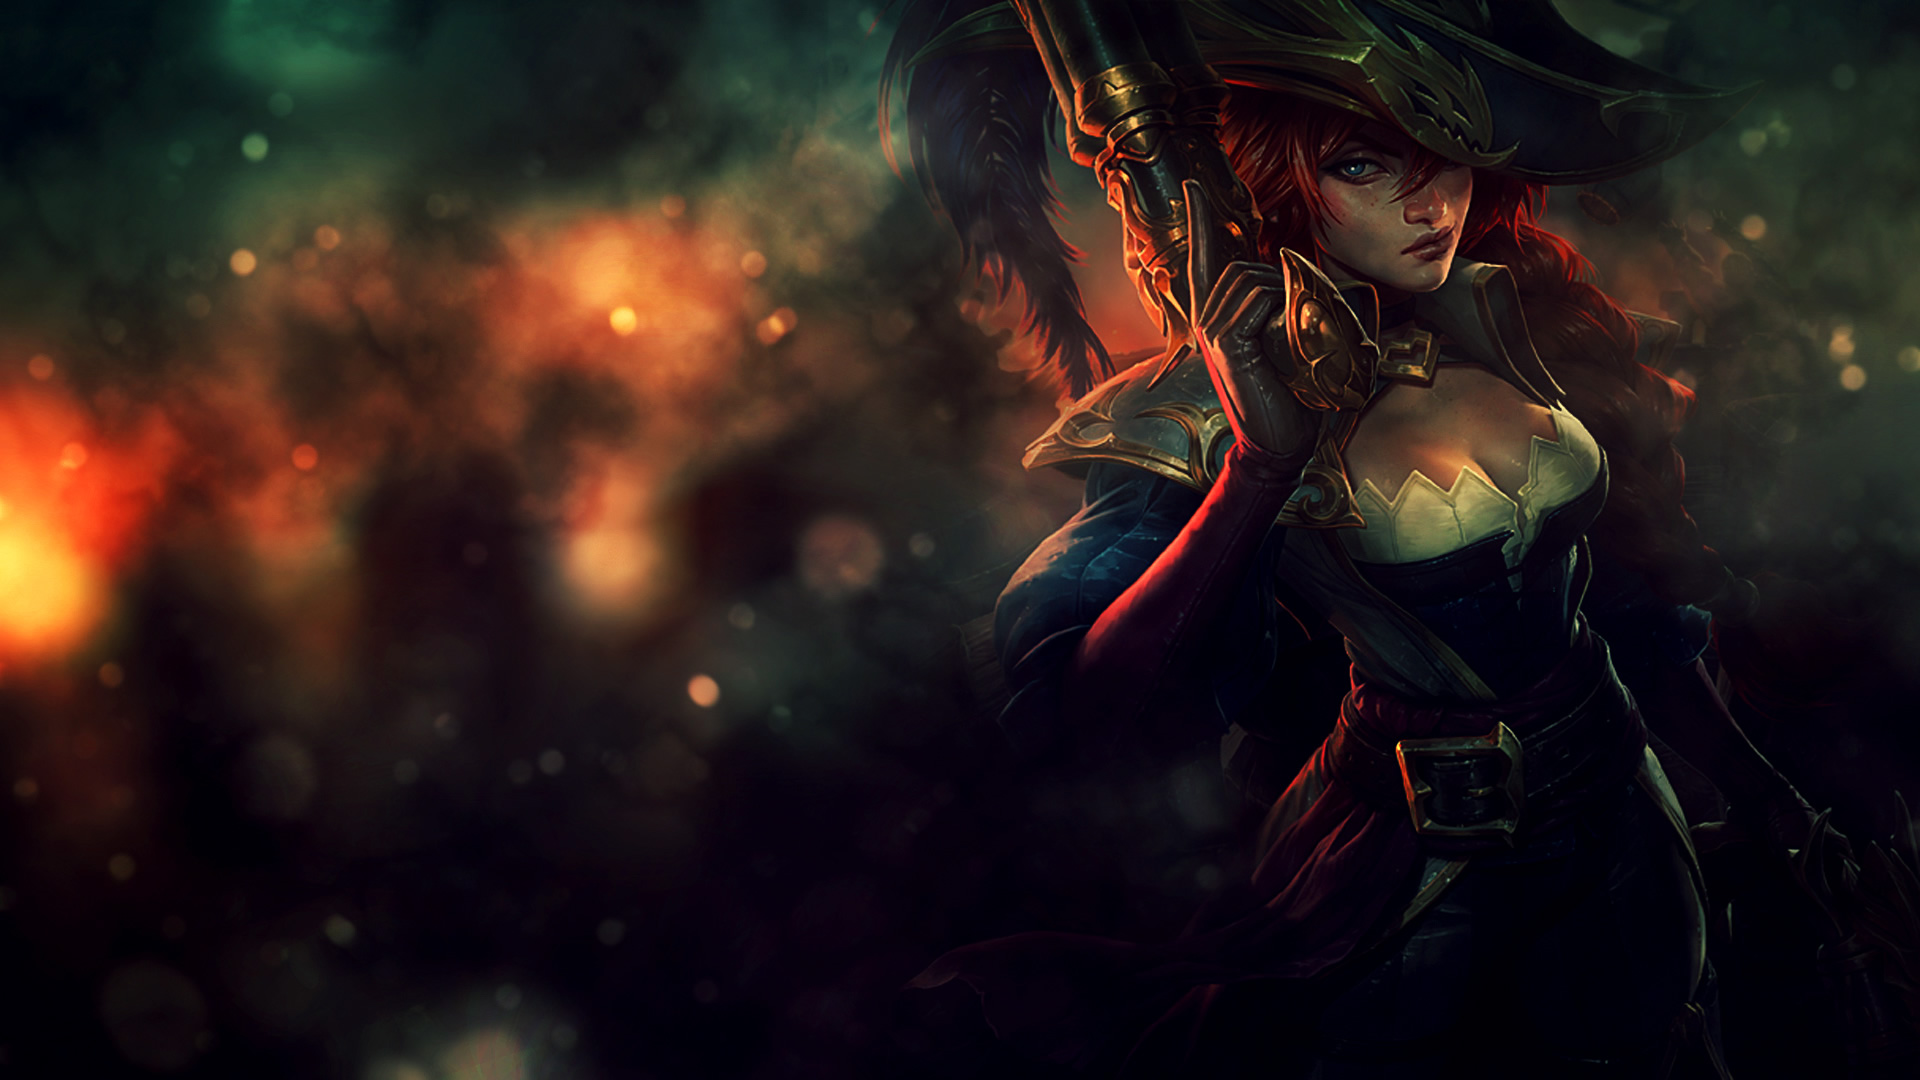 49 Captain Miss Fortune Wallpaper On Wallpapersafari